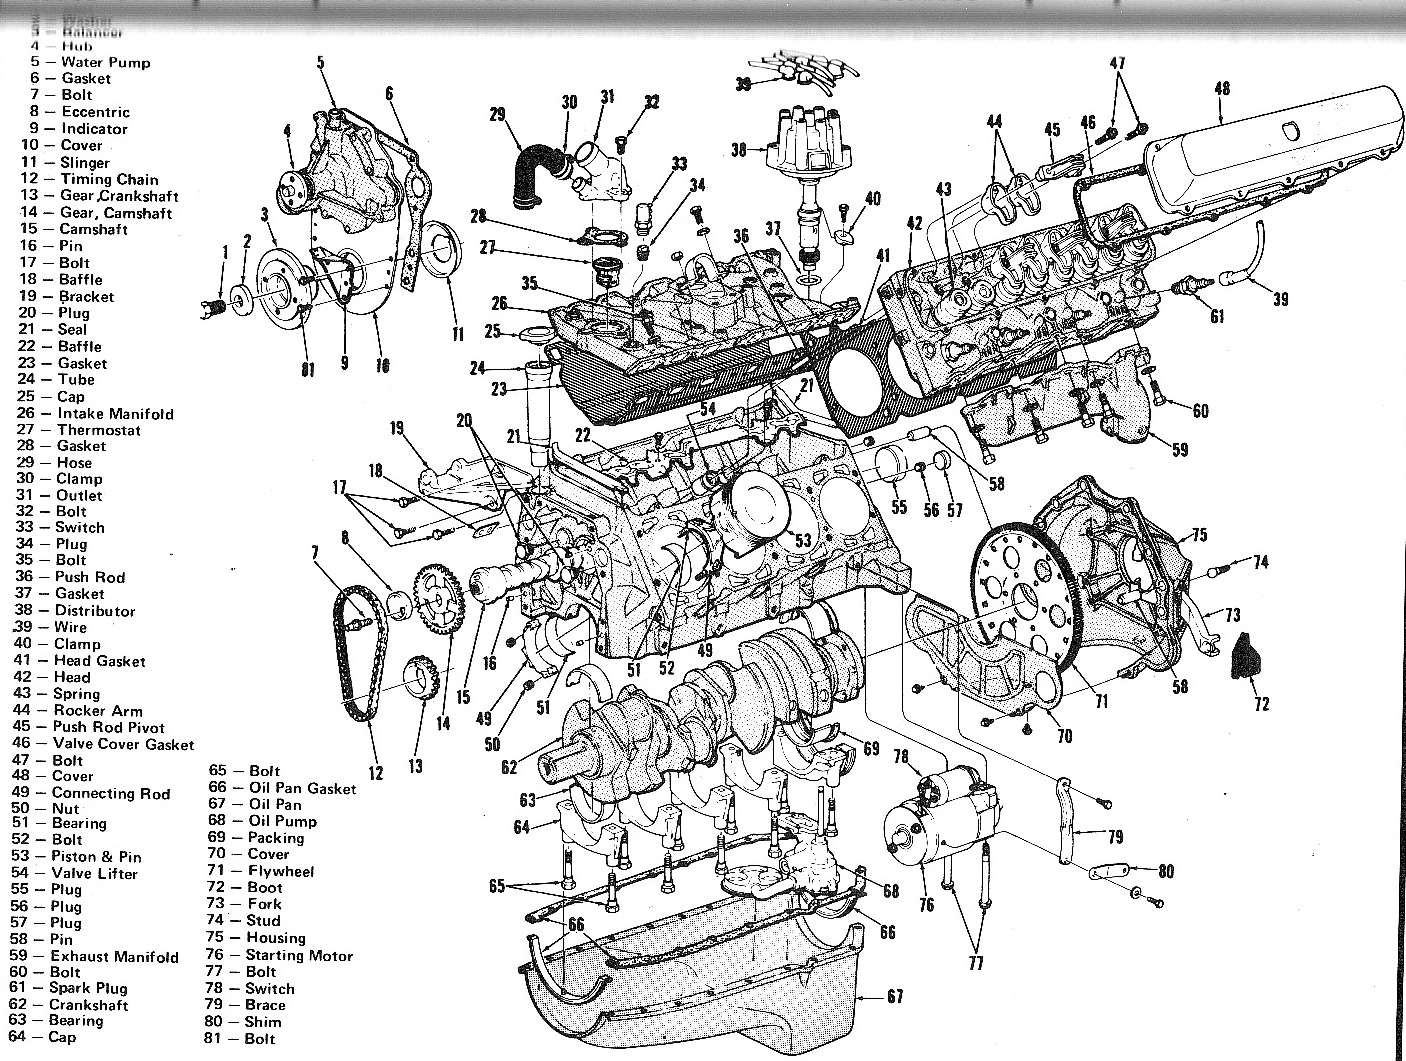 Oldsmobile Engine Diagram Guide And Troubleshooting Of Wiring 2001 Intrigue How Can Get Full Diagrams Grabcad Questions Rh Com 455